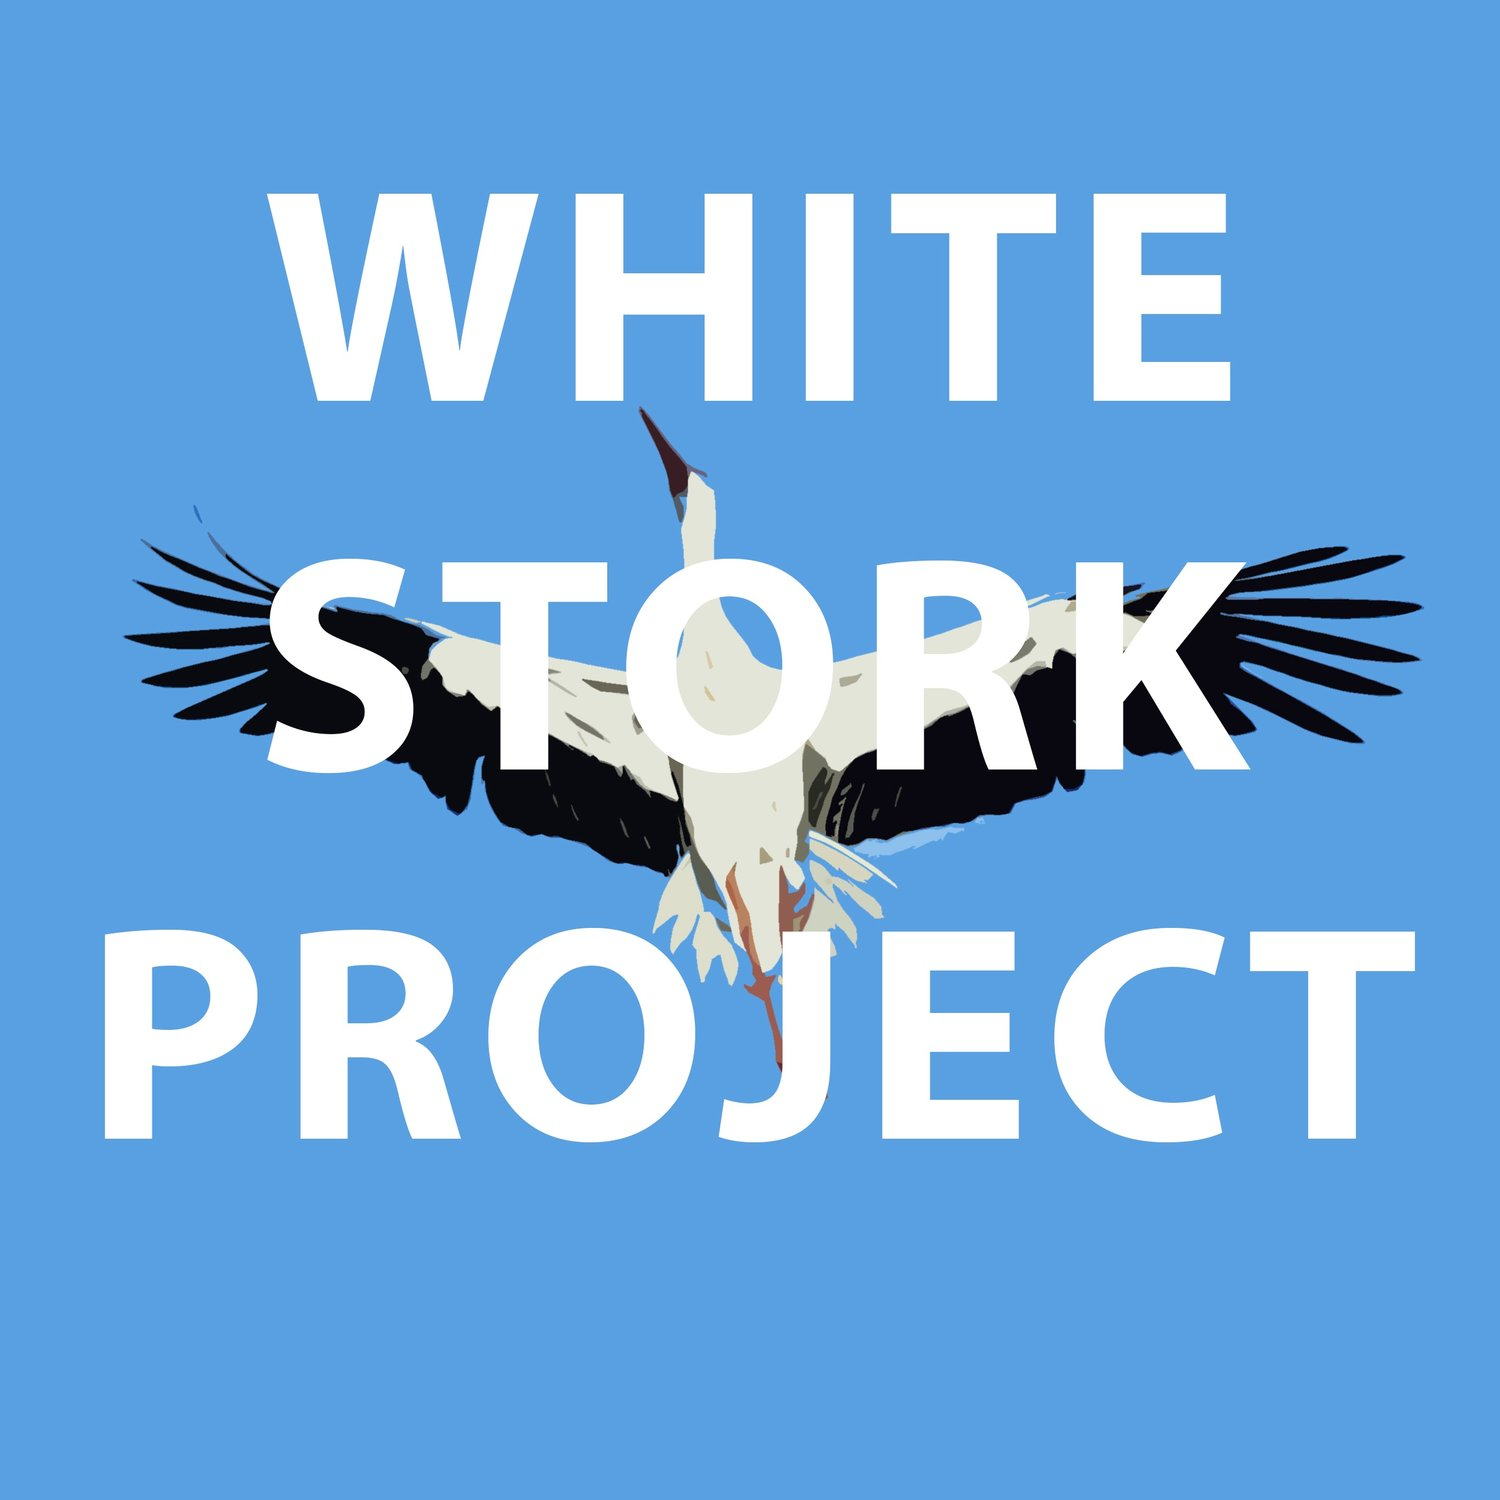 White Stork Project